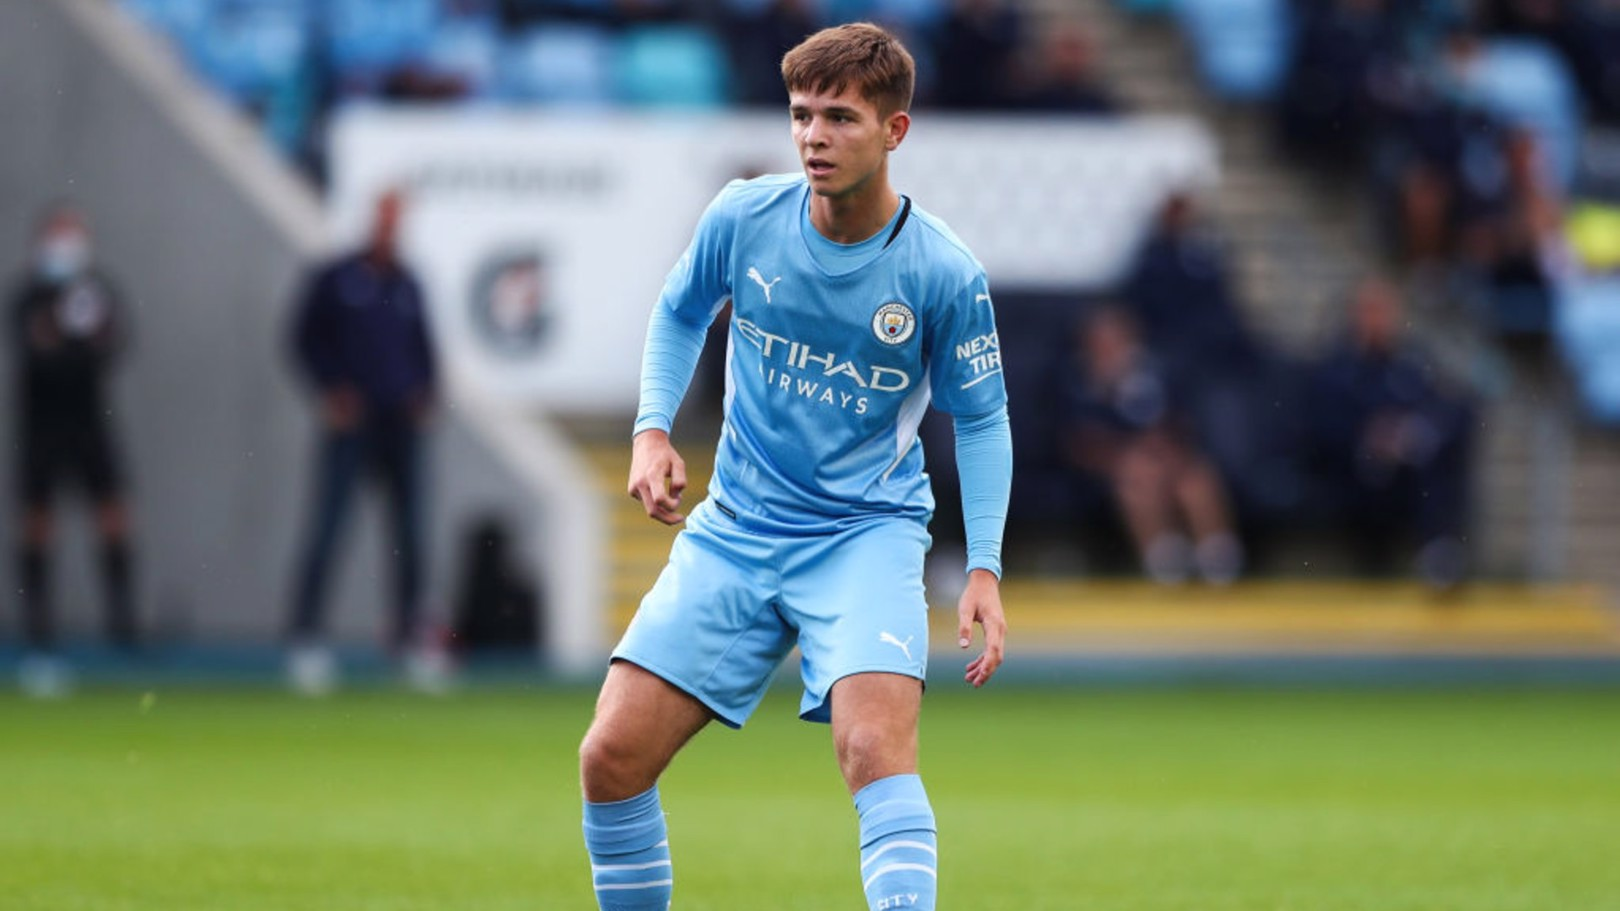 McAtee nominated for PL2 August Player of the Month Award